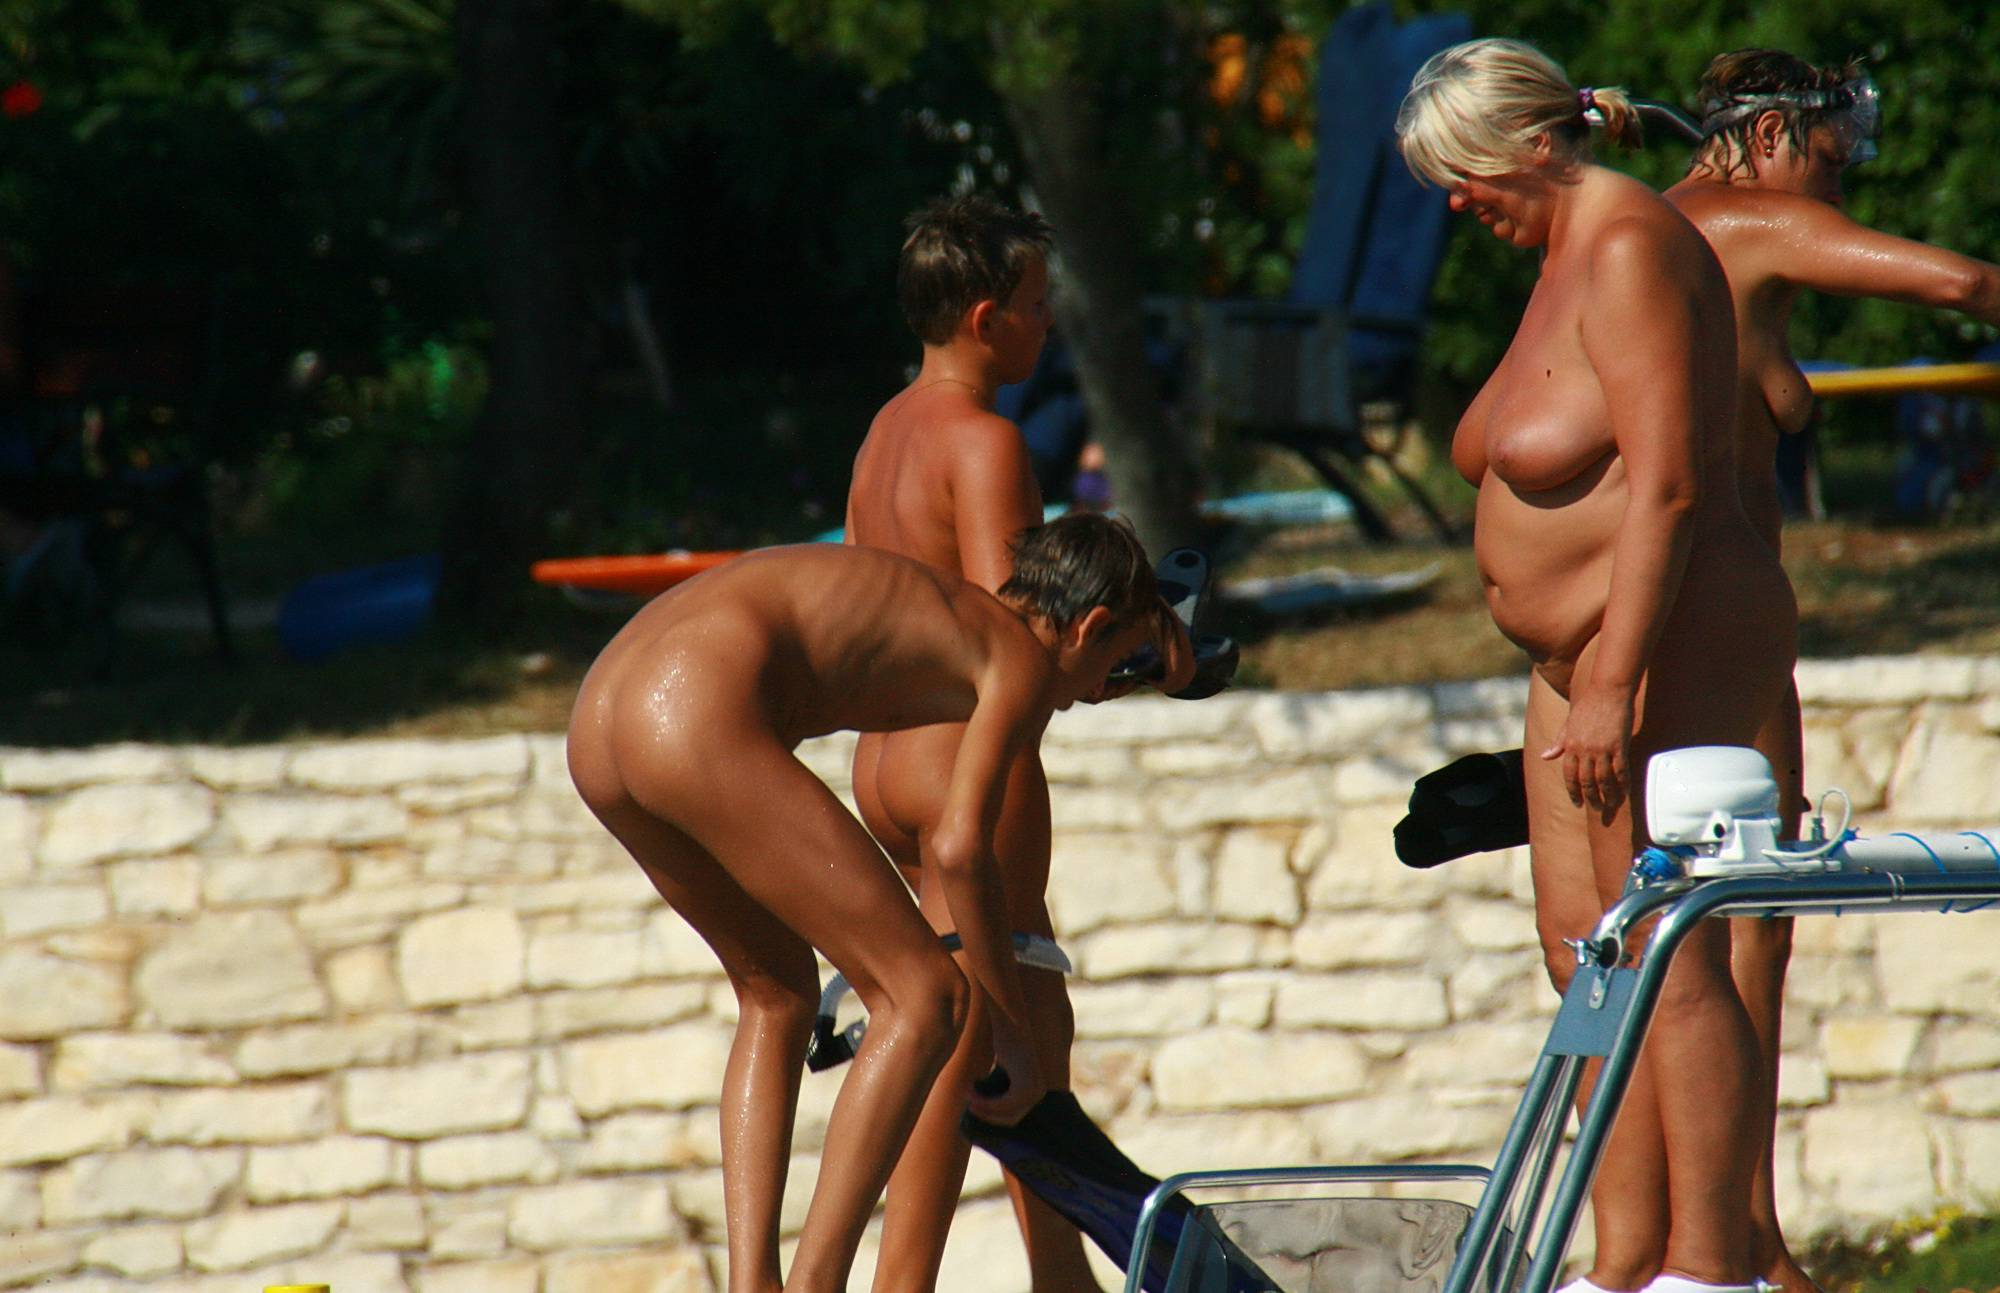 Nudist Pics Lounging By The Grass - 2